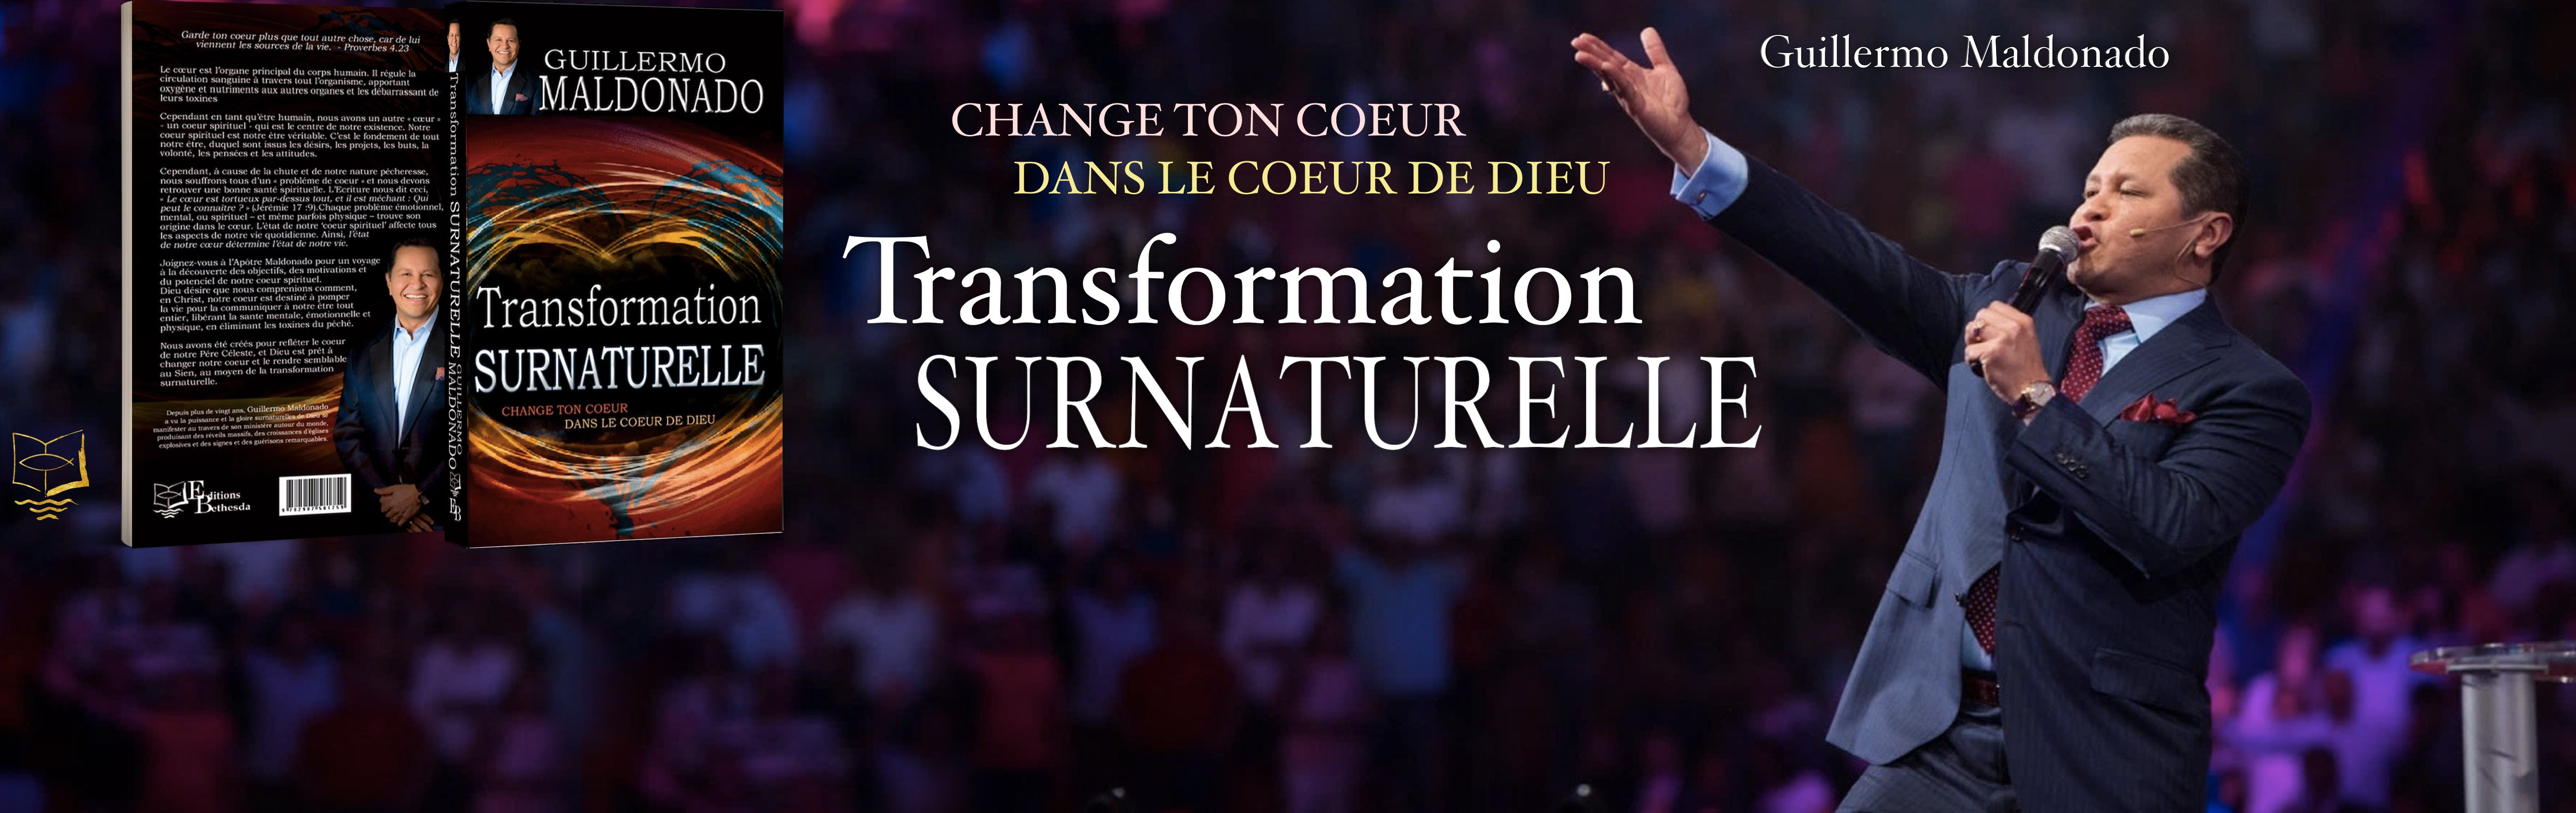 TRANSFORMATION SURNATURELLE - Guillermo MALDONADO